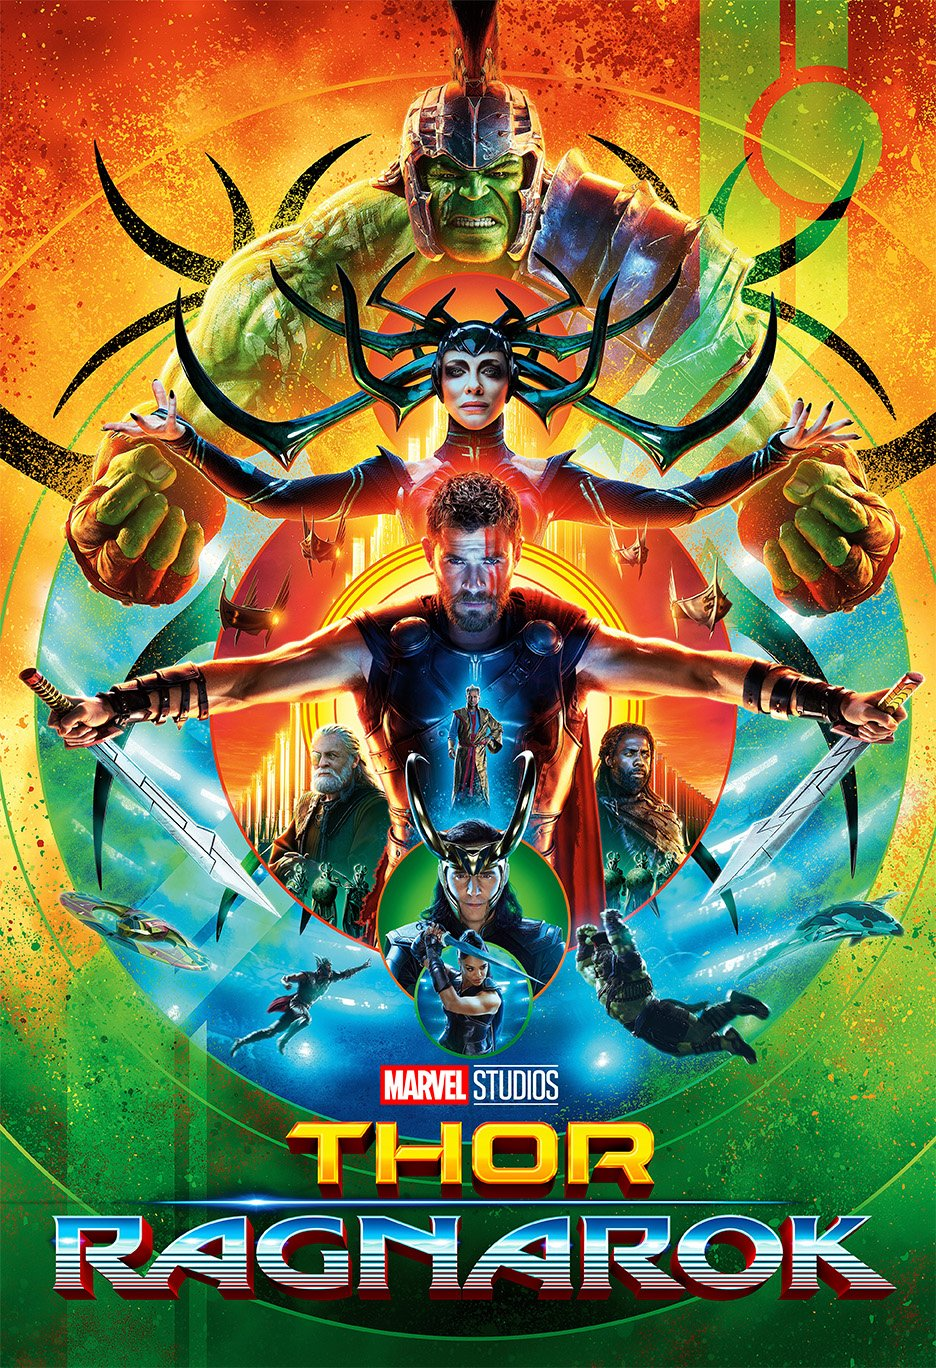 Thor 3 : Ragnarok (2017) - Circle - 13 in x 19 in Movie Poster Flyer BORDERLESS + Free 1 Tile Magnet